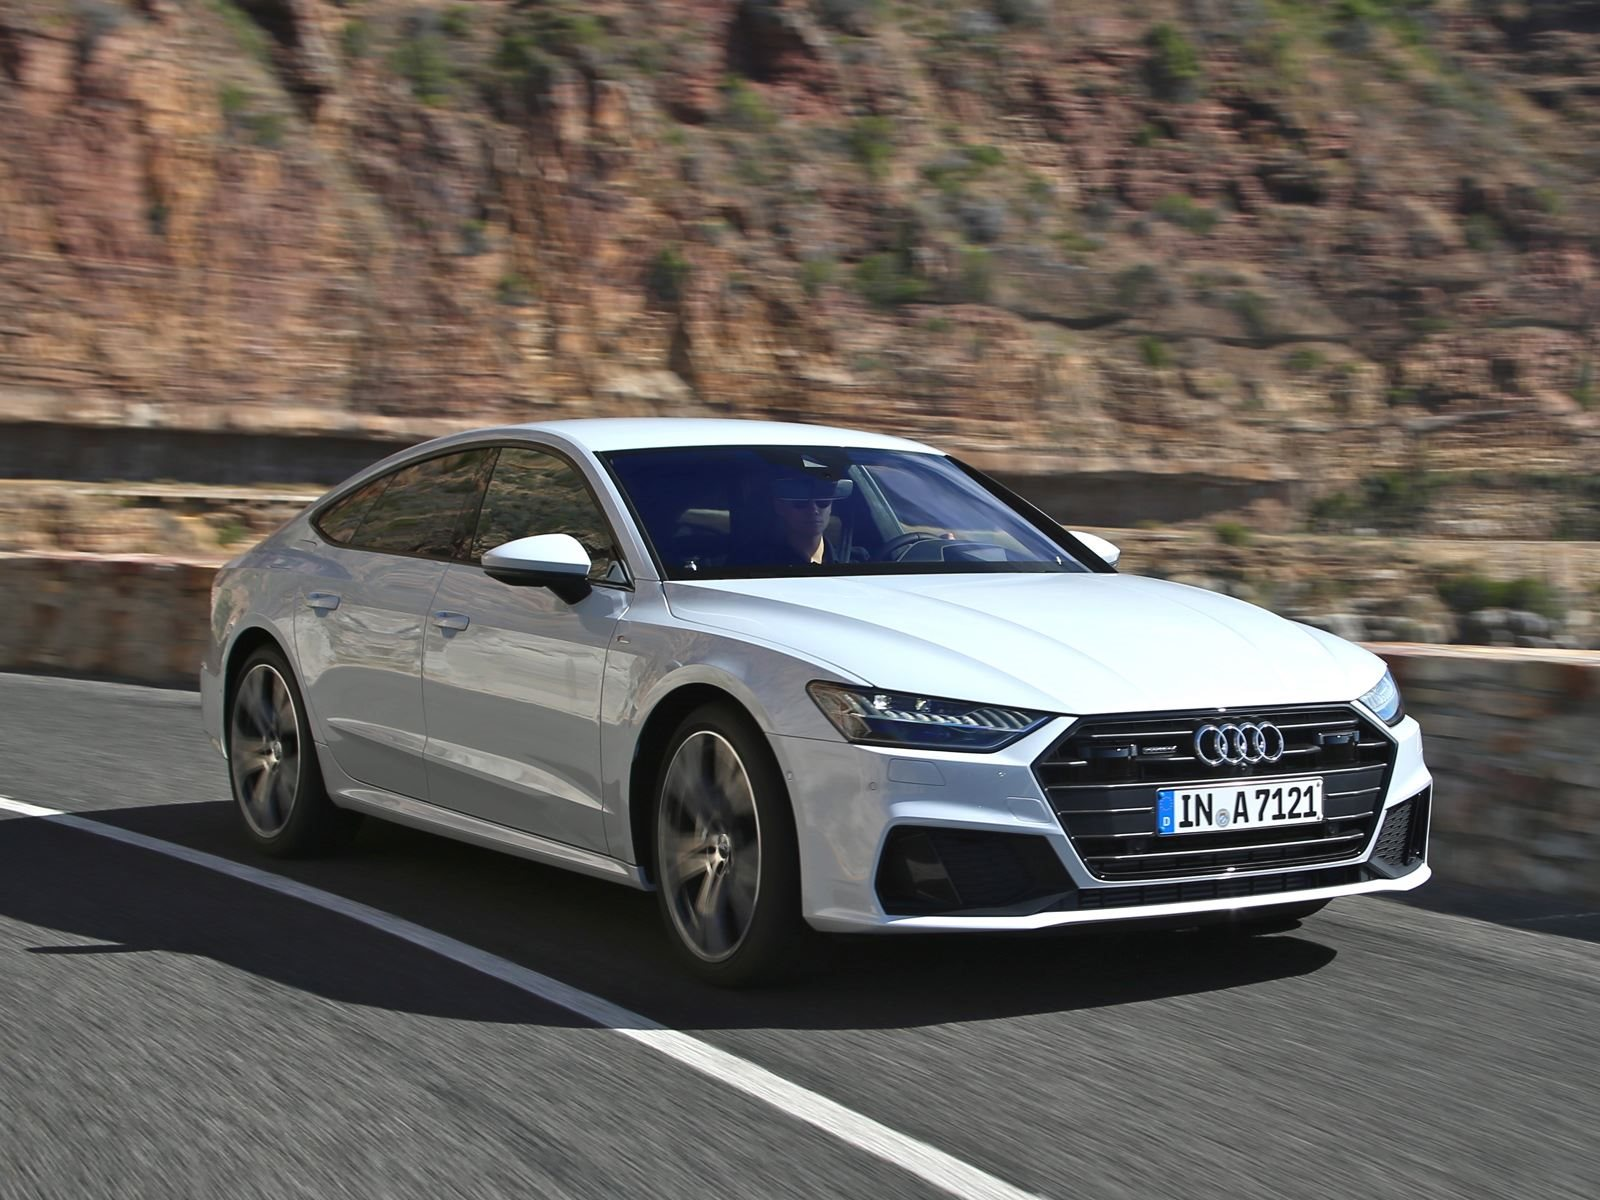 2018 audi a7 sportback first drive review the pursuit of wow carbuzz. Black Bedroom Furniture Sets. Home Design Ideas